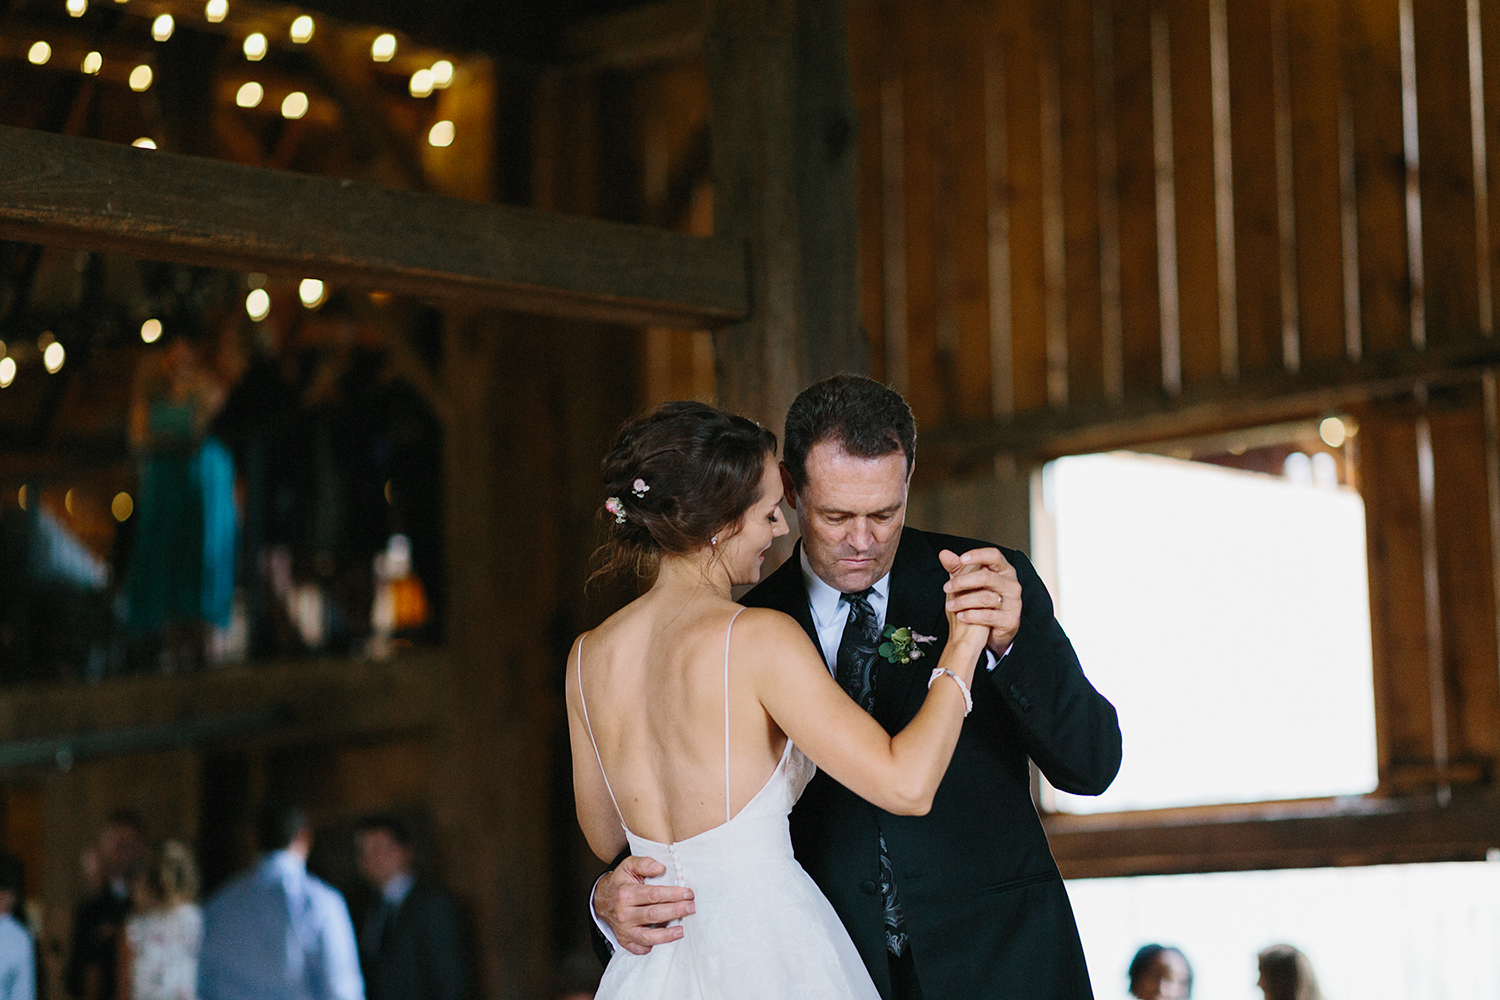 cambium-farms-wedding-ryanne-hollies-photography-gay-wedding-lgbtq-trendy-cool-badass-junebug-weddings-inspiration-reception-celebration-bride-and-bride-first-dance-in-barn-with-string-lights-and-other-guests-dancing.jpg